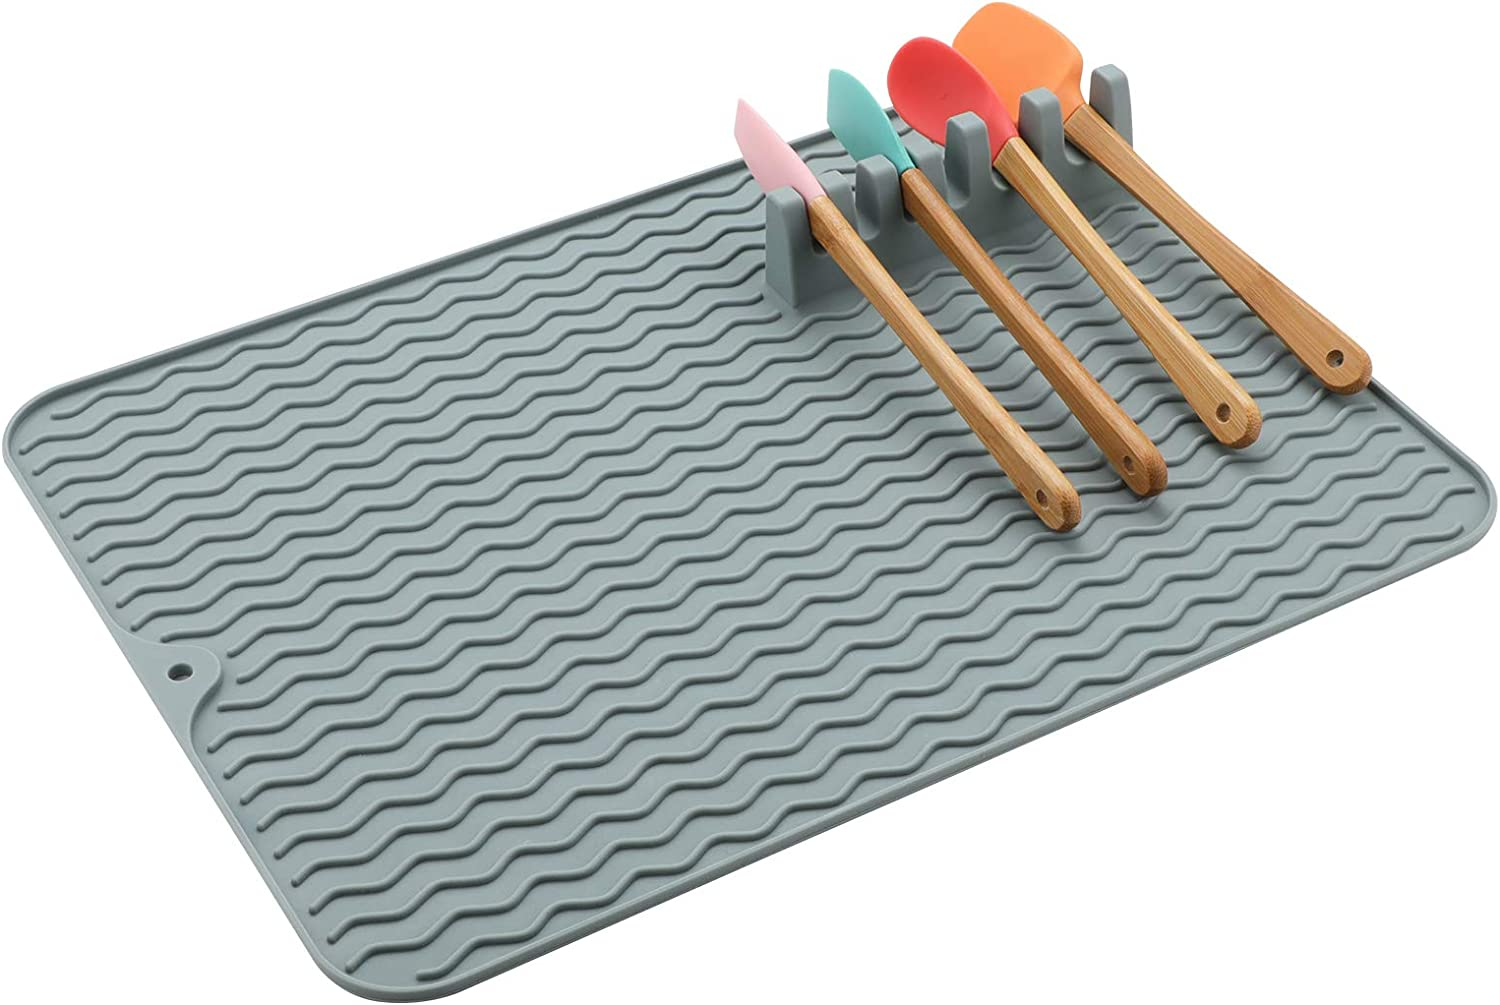 Dish Drying Mat, Dishes Drainer Mats, Food Grade Silicone Dish Mat for Kitchen Counter Sink Picnic Camping (Grey 16 x 12 inch)